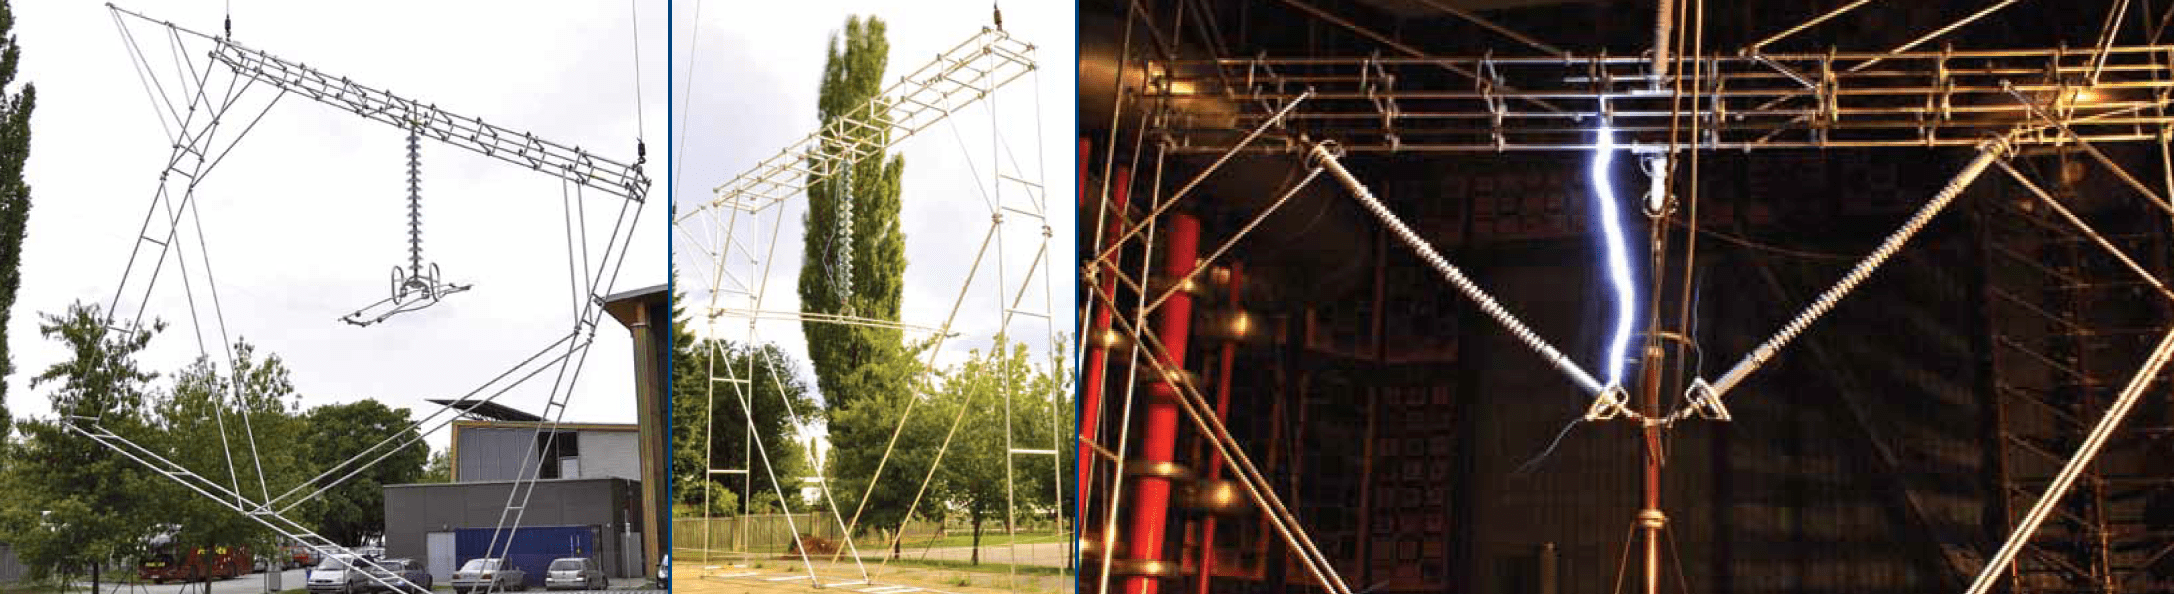 Fig. 5a: Tower window in upright position for testing flashover voltage across insulator string (top right). Fig. 5b: Tower window tilted for testing flashover voltage between conductor and tower leg or guy wire (top left). Fig. 5c: Full scale model of tension tower for flashover testing (bottom right). voltage upgrade Norwegian TSO Re-Dimensioned Insulation in Voltage Upgrade Project Screen Shot 2016 09 16 at 13